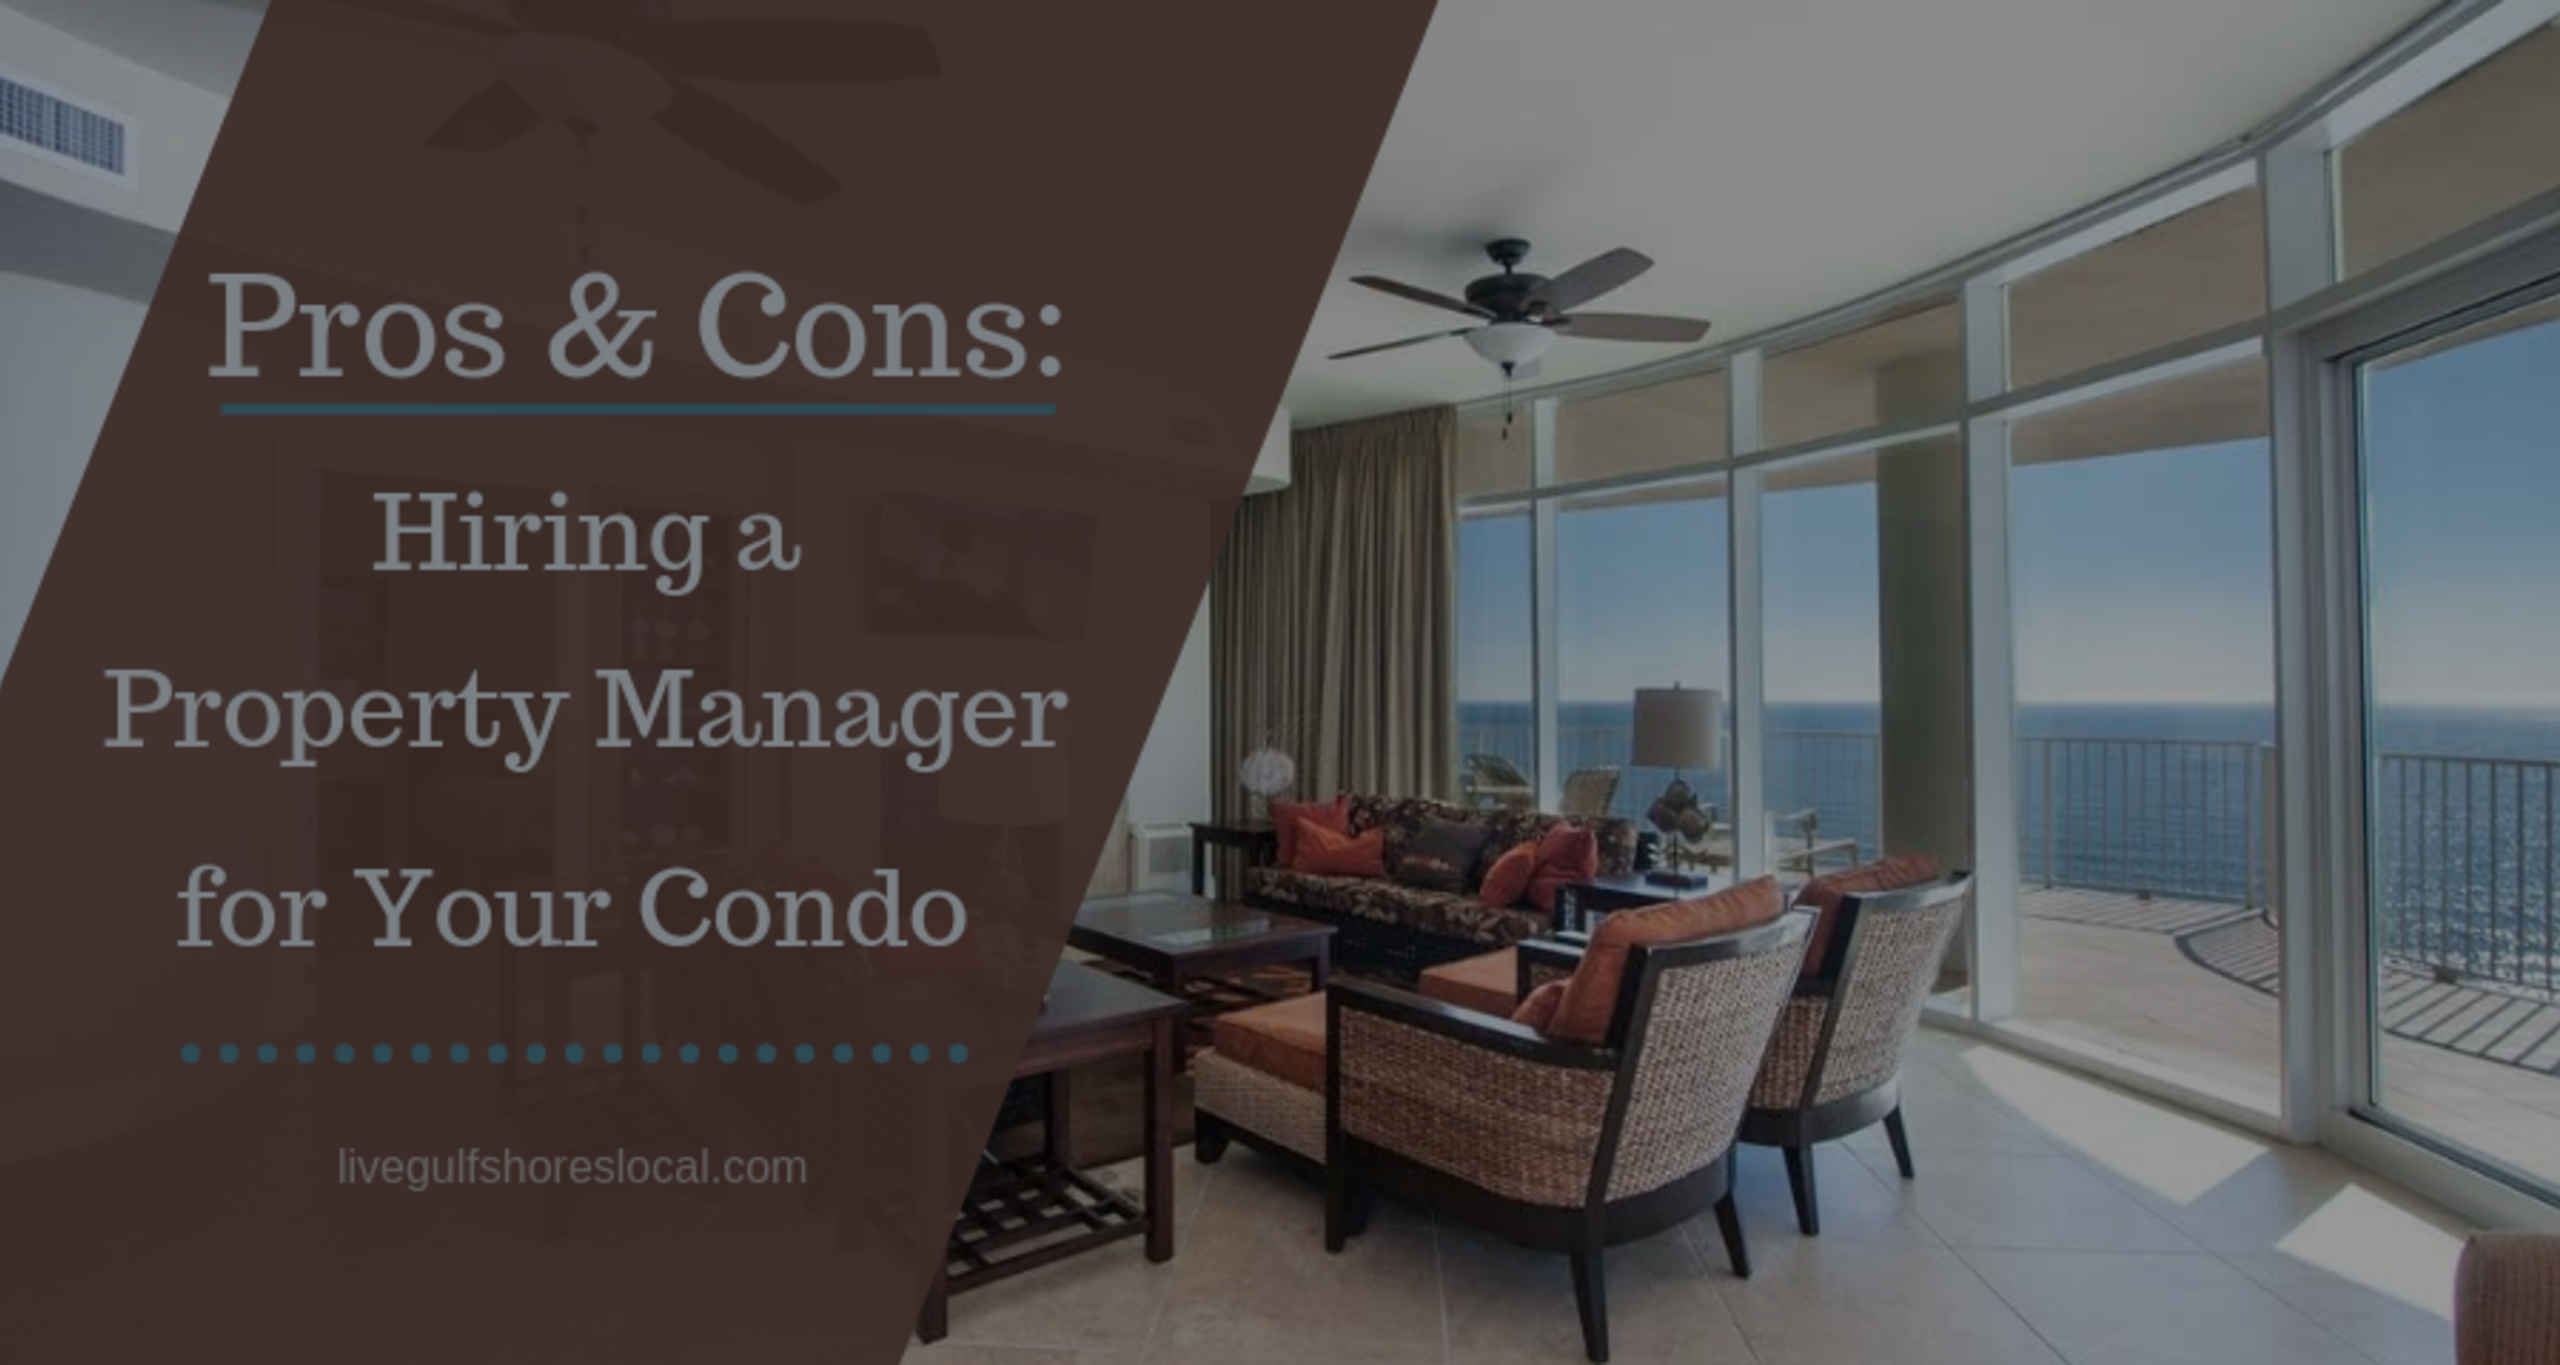 Pros and Cons of Hiring a Property Manager for Your Condo